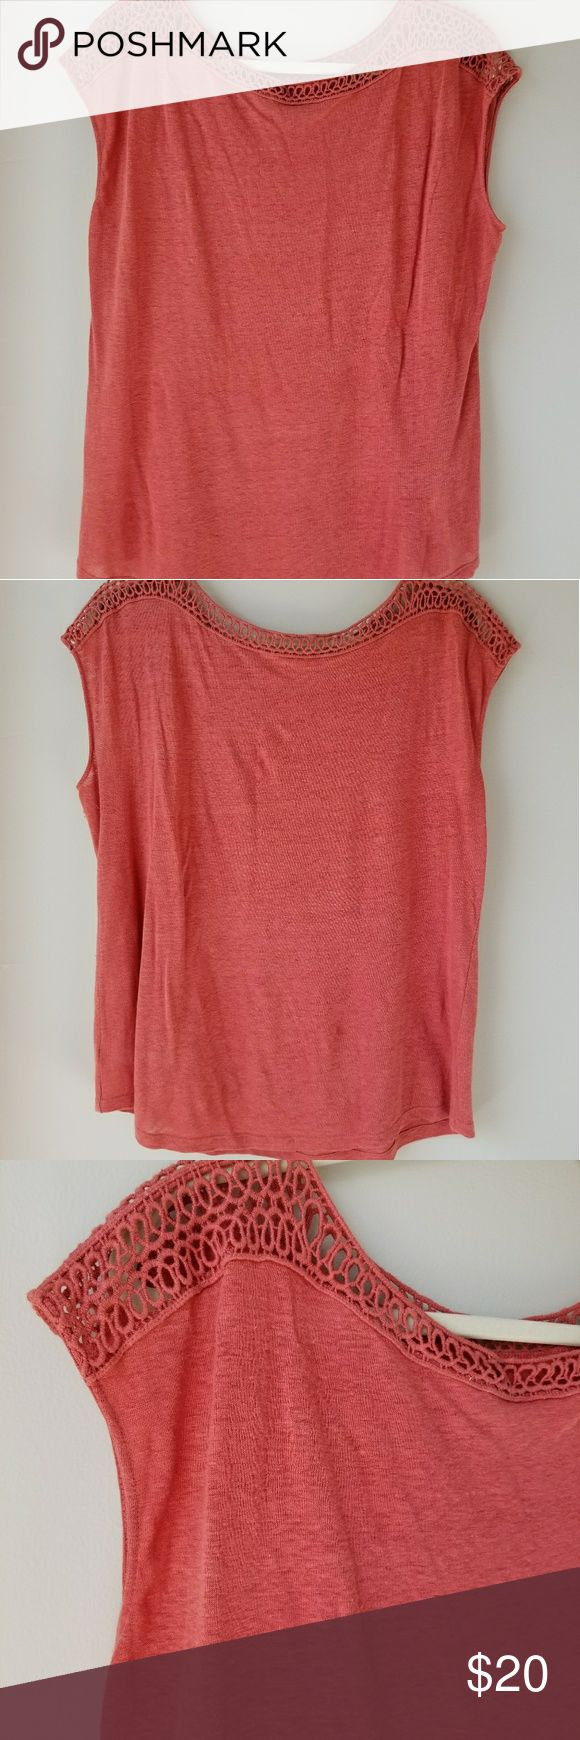 """Coral top with crochet detail This 100% linen top from Loft is very flowy with a unique, subtle crochet detail on the neckline and shoulders.  The shirt does not wrinkle like a typical linen top, however it does have a linen texture up close that looks somewhat like very light pilling.  I have taken a fabric shaver to the top, to make sure it's not pilled. The color is a muted coral/salmon color, not as vibrant as the photos. VGUC, no pulls or stains. Smoke free/pet free. 22"""" chest, 27""""…"""